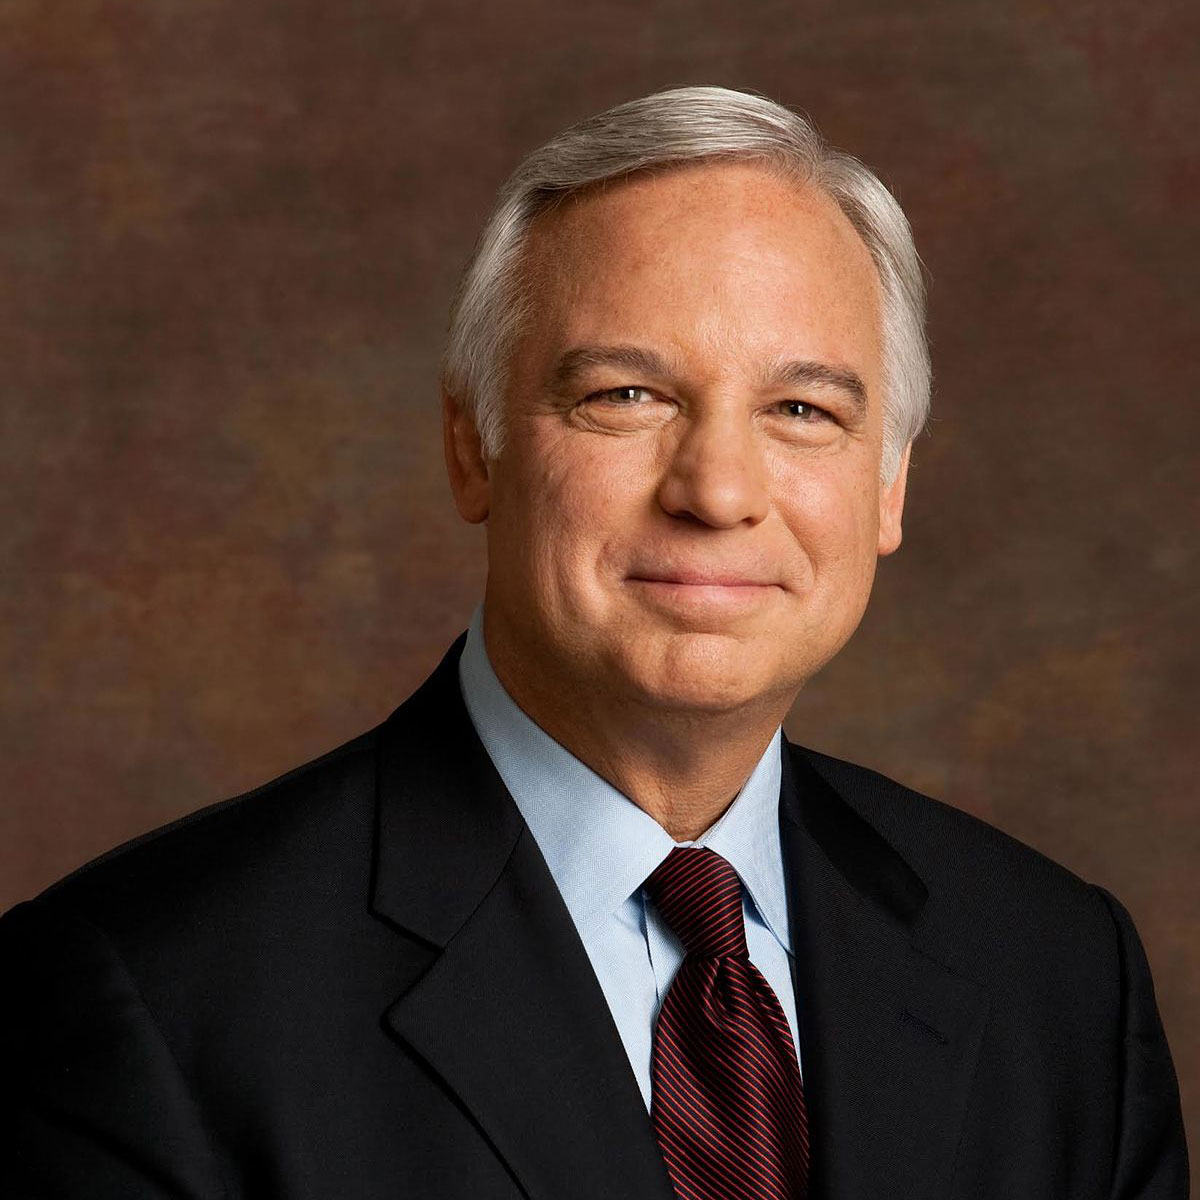 JACK CANFIELD - Co-creator of the Chicken Soup for the Soul book series